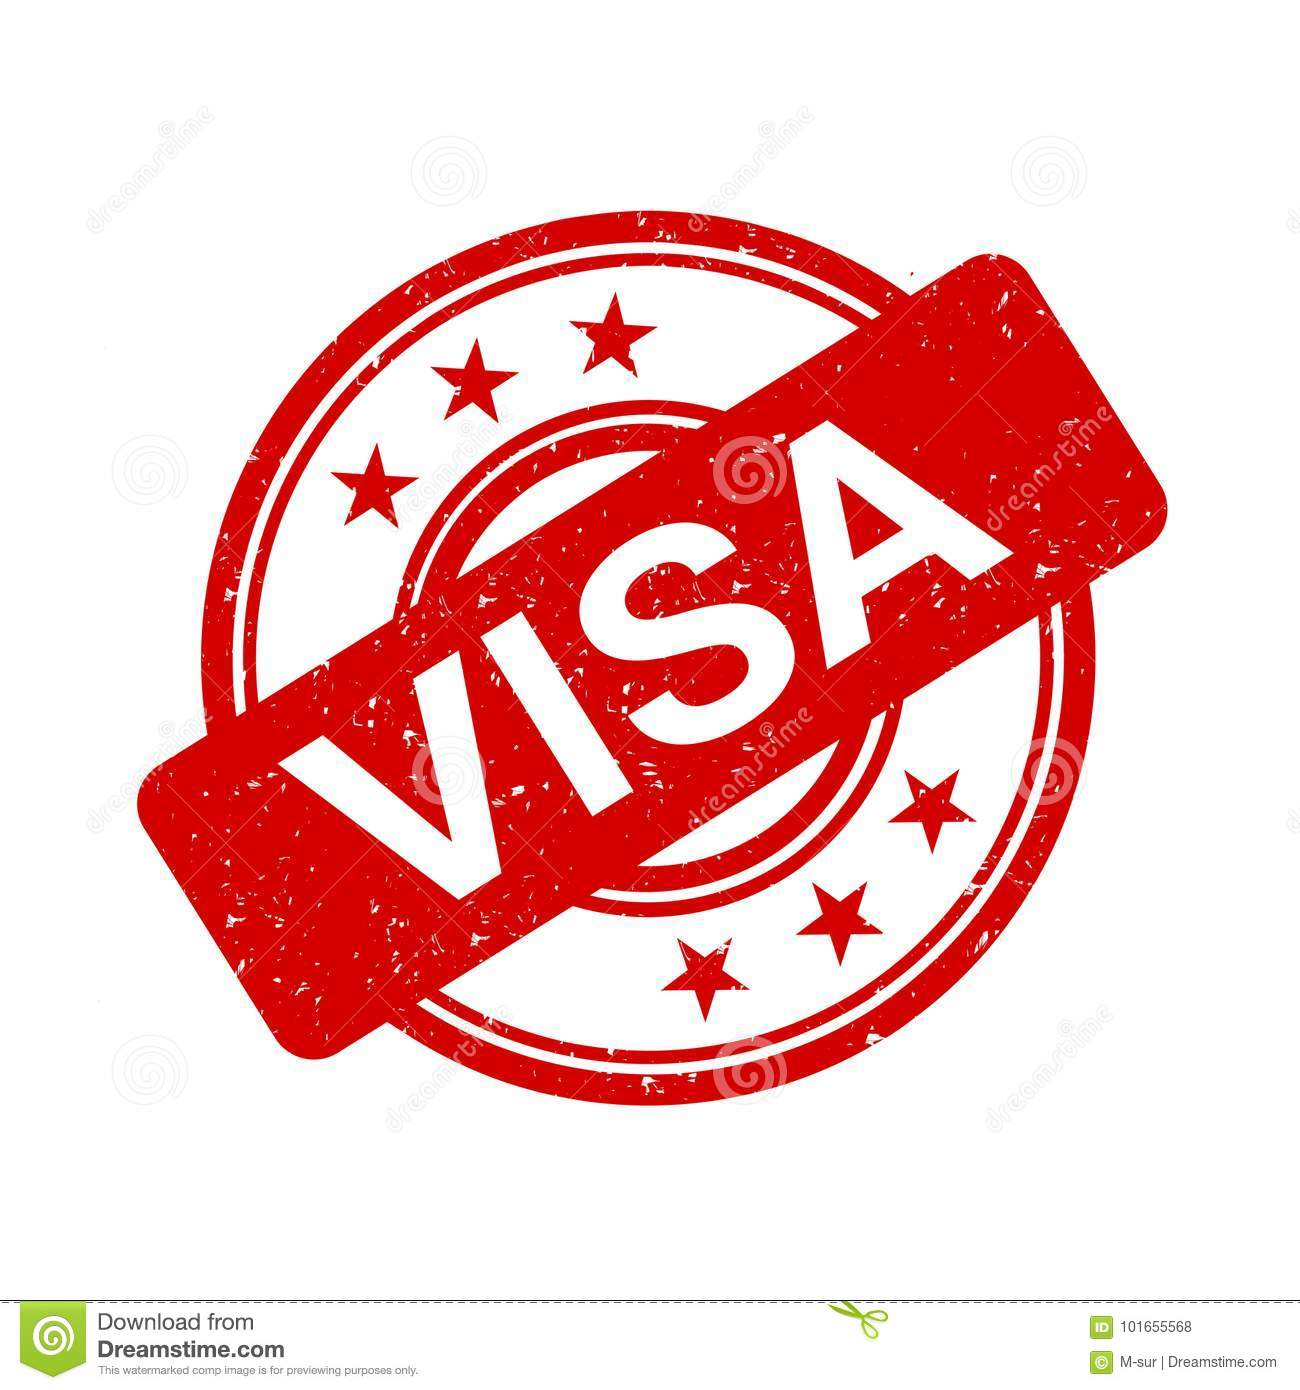 Visa Application Form To China From Australia on australia immigration, example application form, australia business, australia student visa, immigration application form, australia tourist visa form,